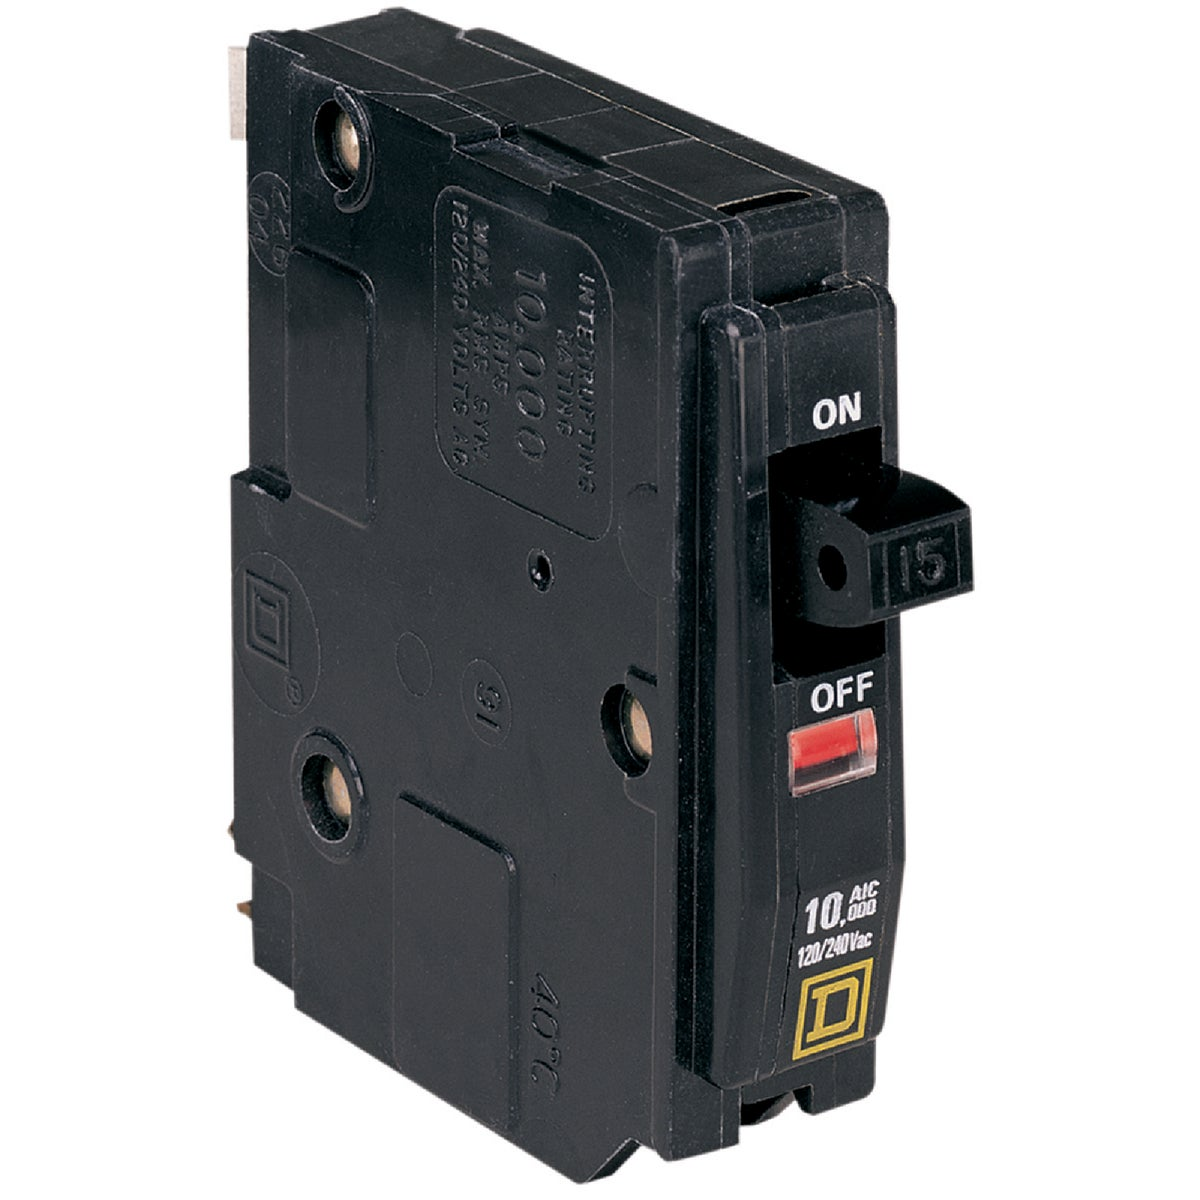 15A SP CIRCUIT BREAKER - QO115C by Square D Co